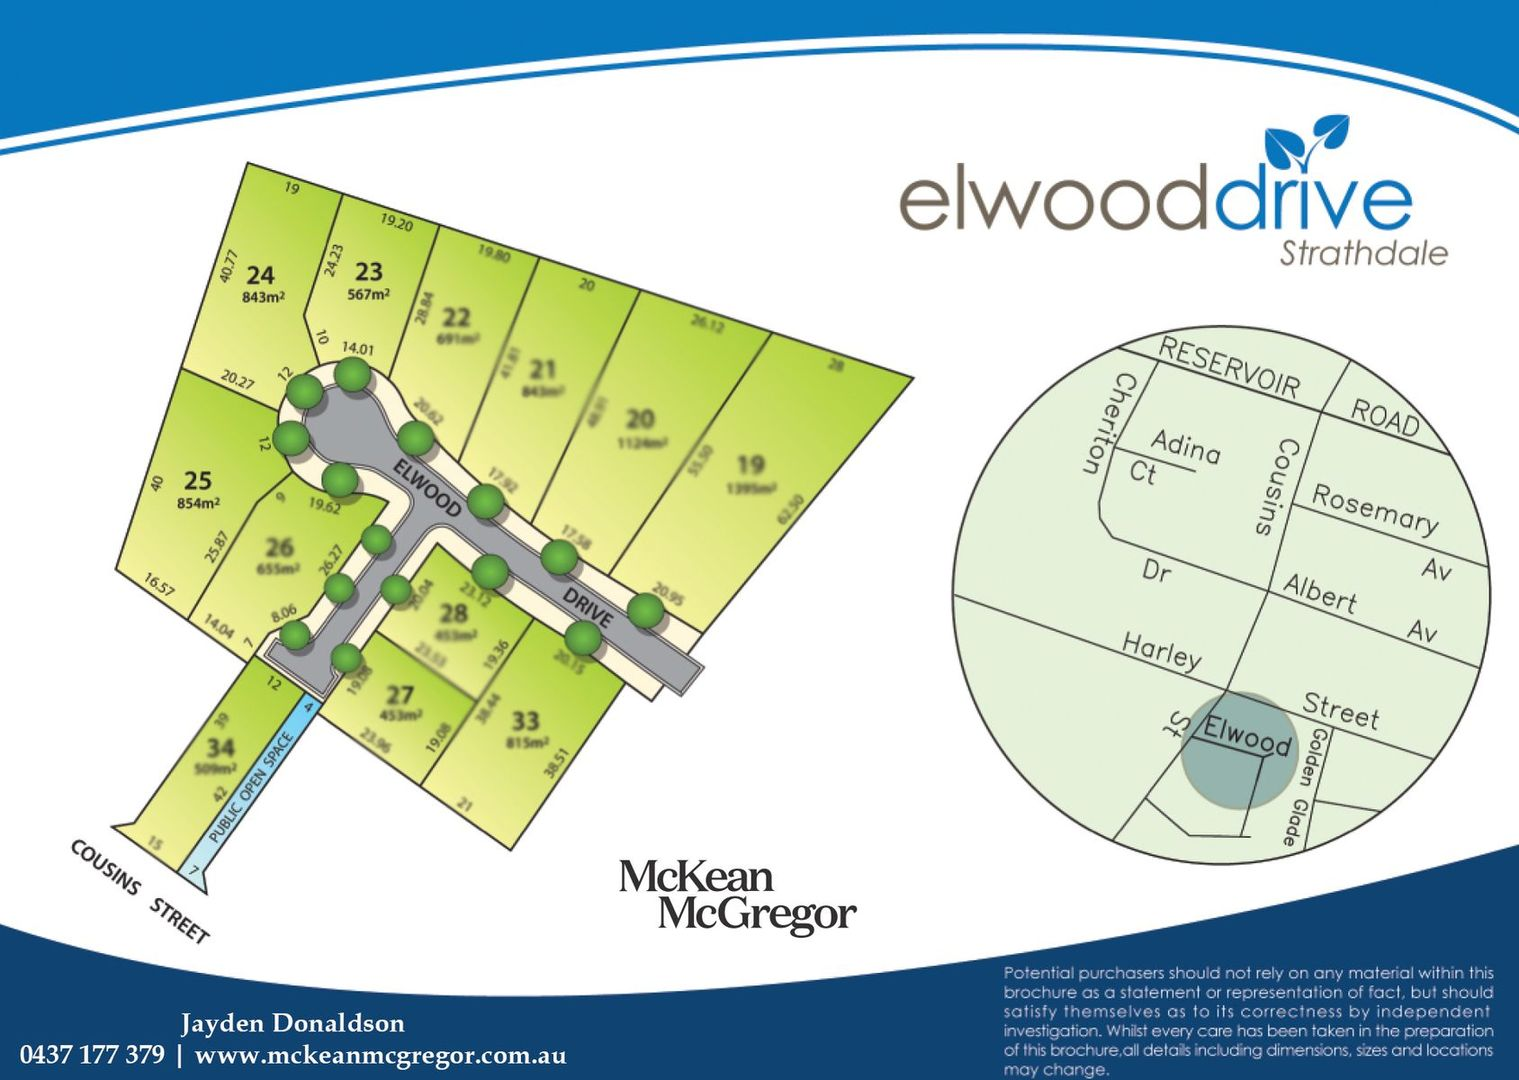 Lot 25 Elwood Drive, Strathdale VIC 3550, Image 1